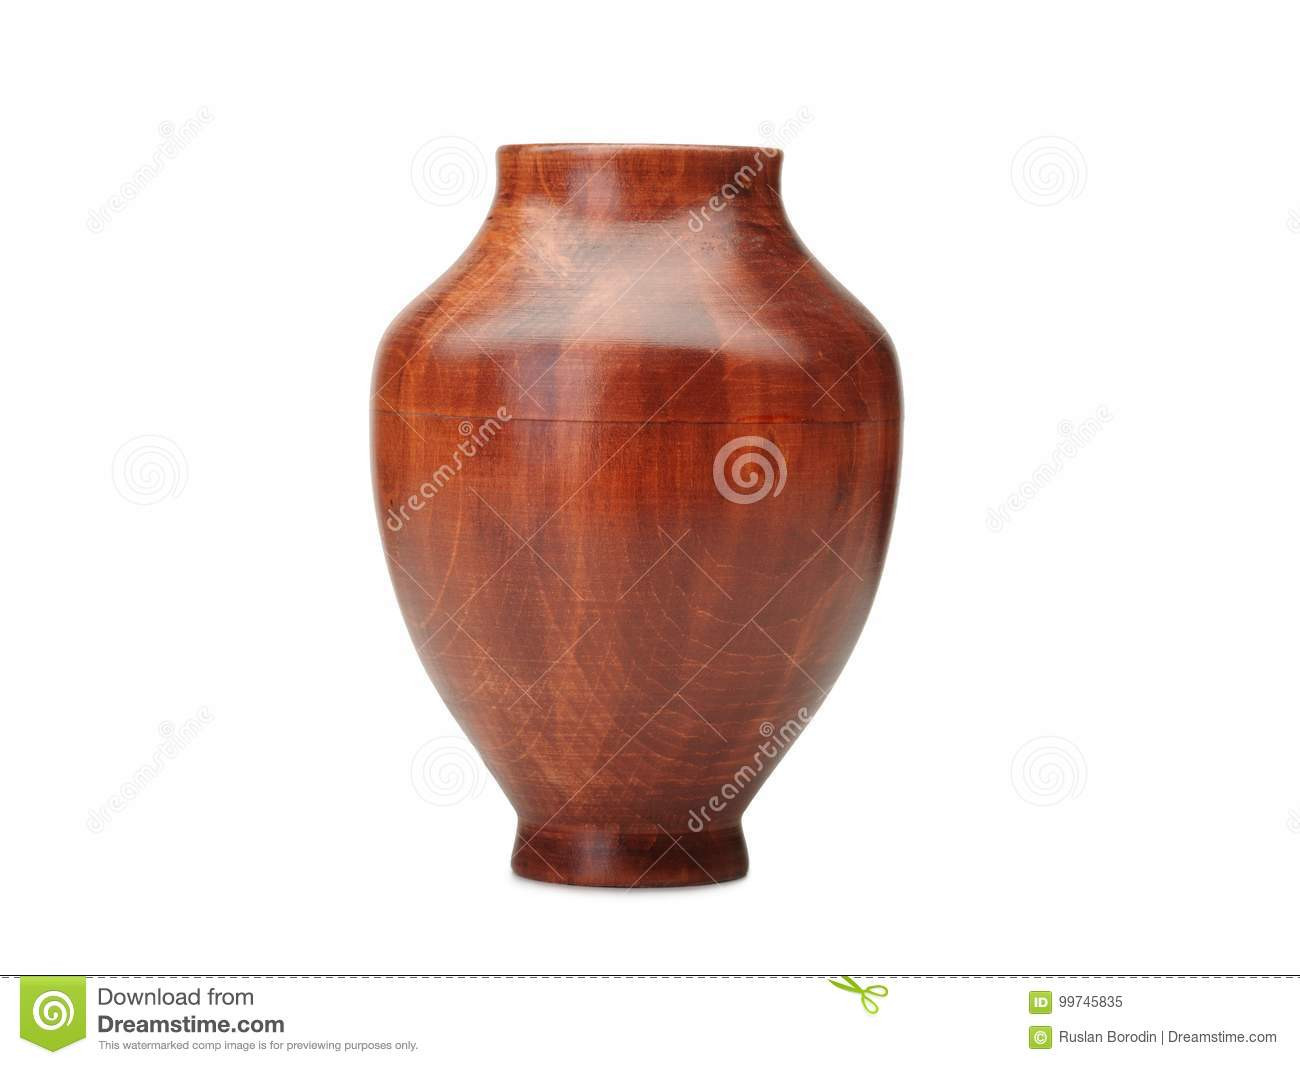 blue and white pottery vases of flower vase made of wood isolated on white background stock image with regard to download flower vase made of wood isolated on white background stock image im